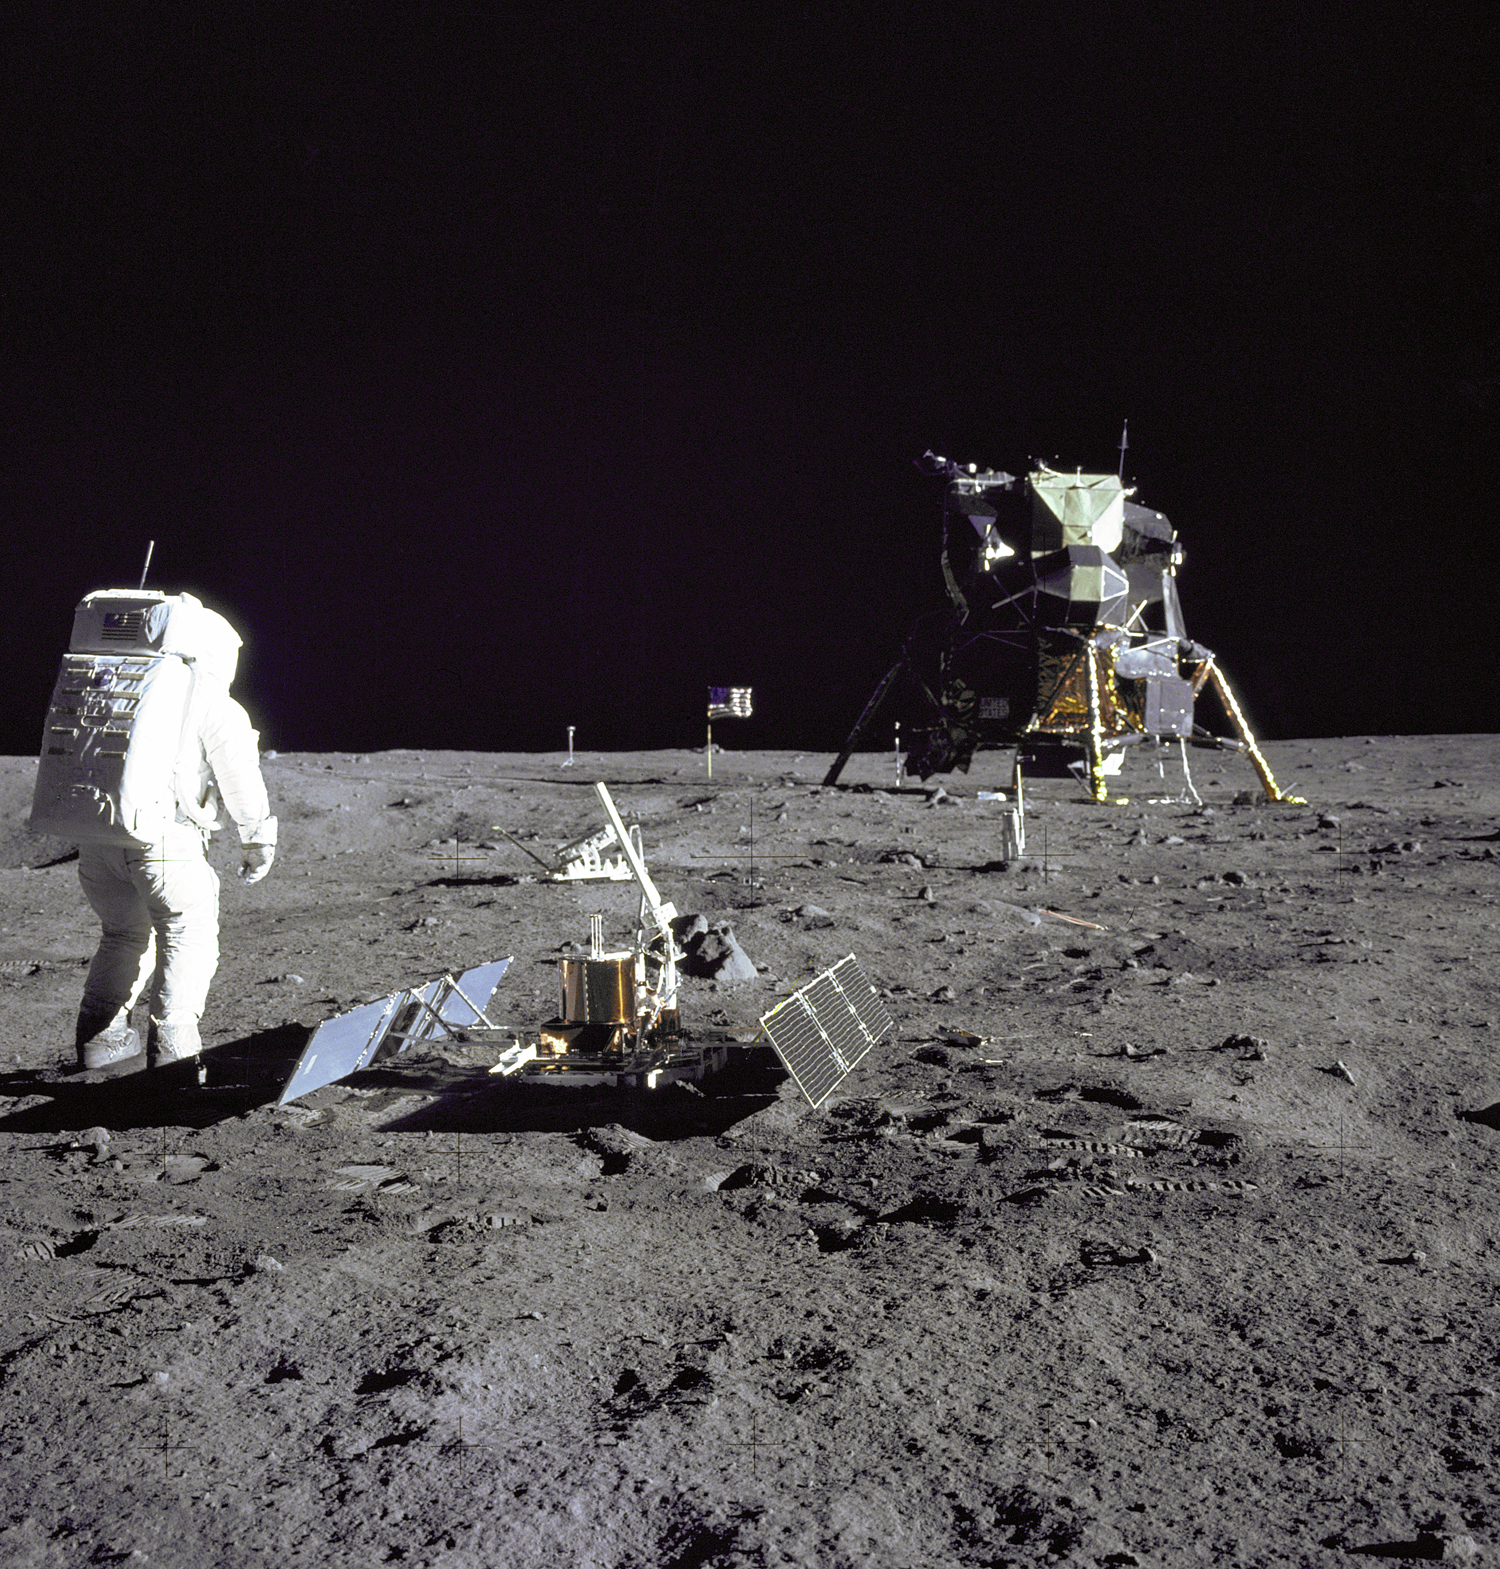 APOD: 2006 March 27 - Moonquakes Surprisingly Common